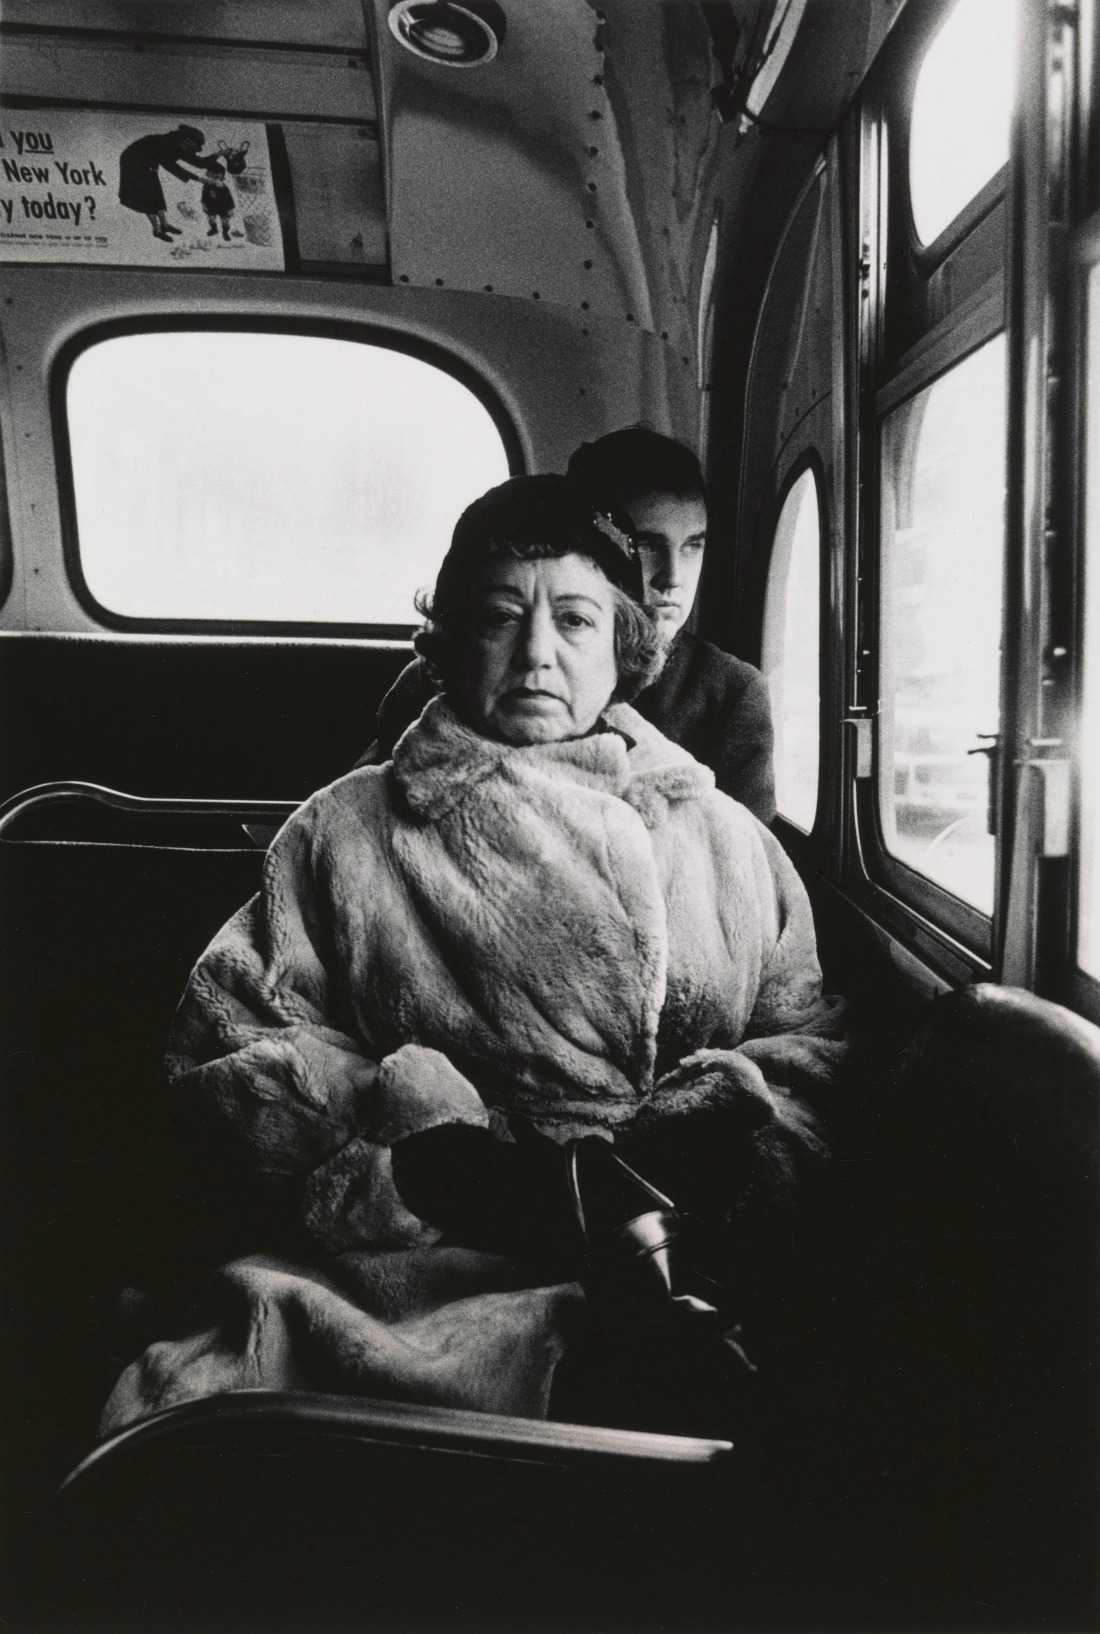 Lady on a bus, N.Y.C. 1957 © The Estate of Diane Arbus, LLC. All Rights Reserved